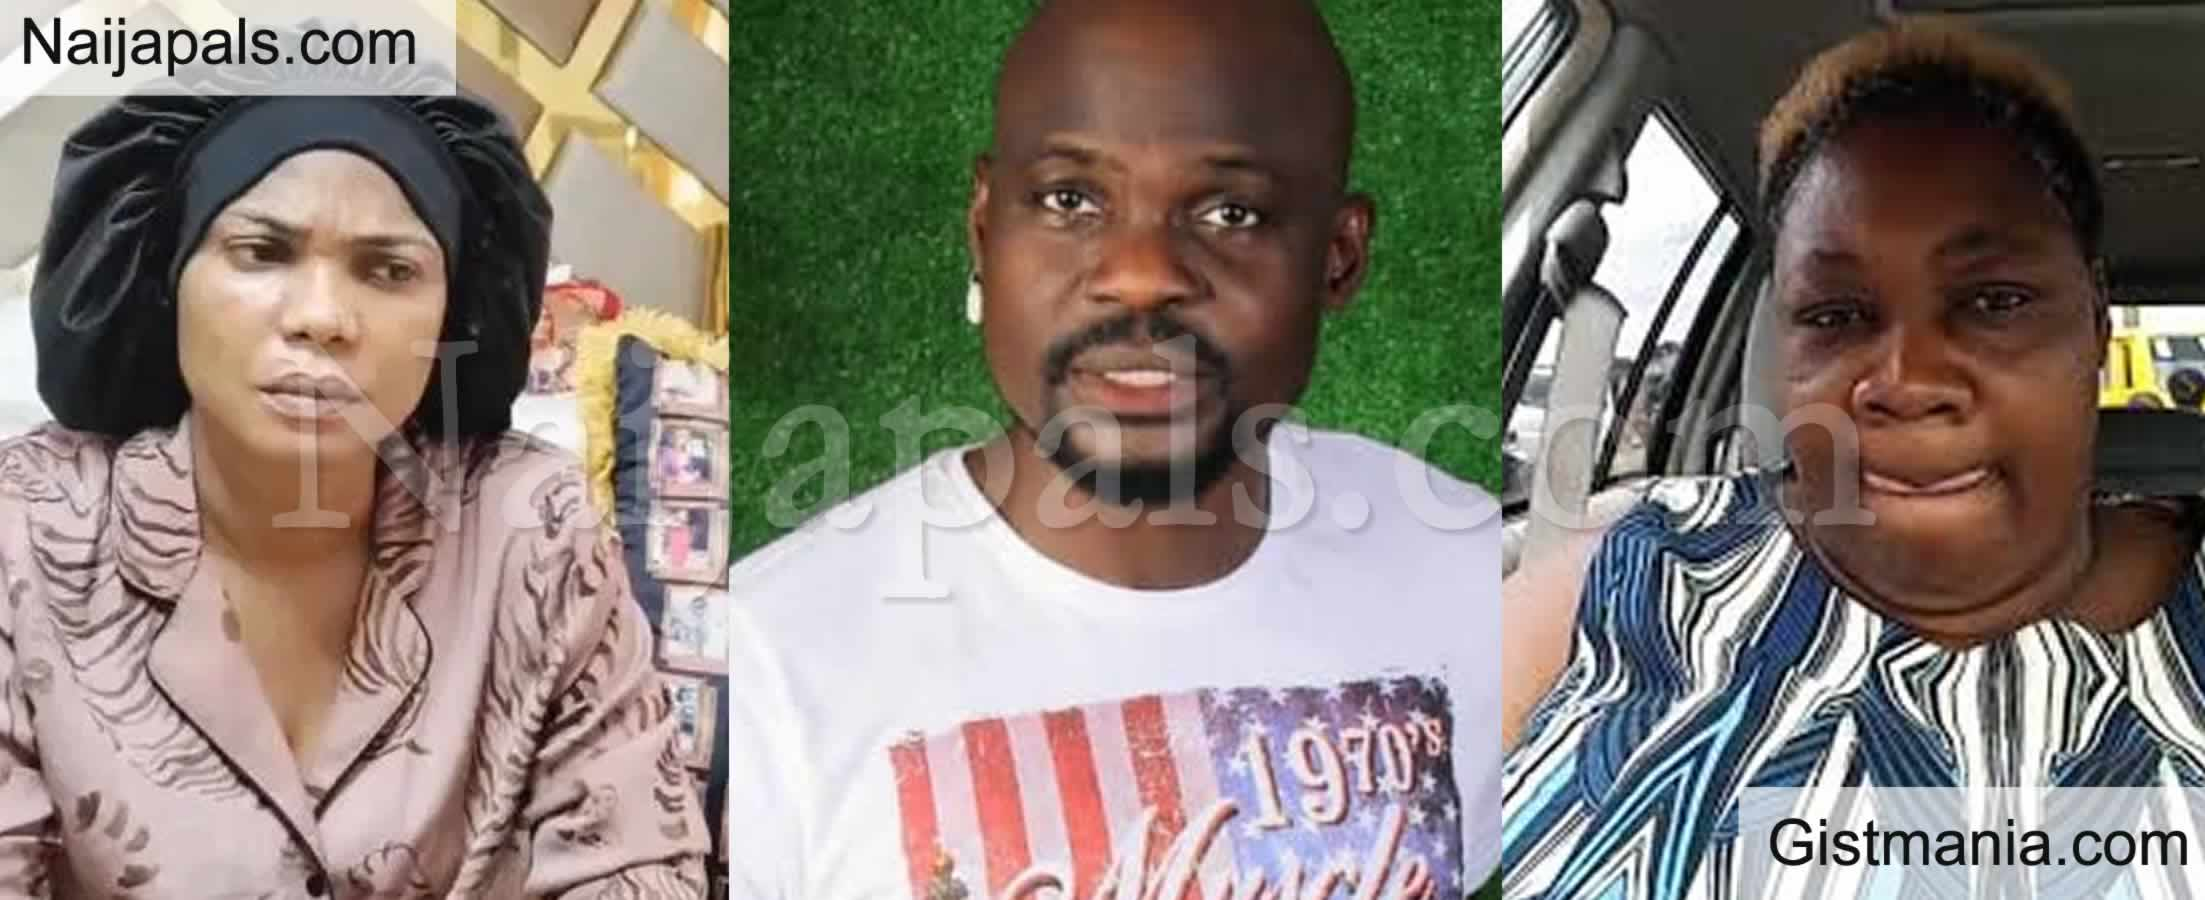 <img alt='.' class='lazyload' data-src='https://img.gistmania.com/emot/comment.gif' /> <b>Princess & Iyabo Ojo Are in Trouble If Baba Ijesha is Arraigned</b> - Another Twist to The Rap3 Saga